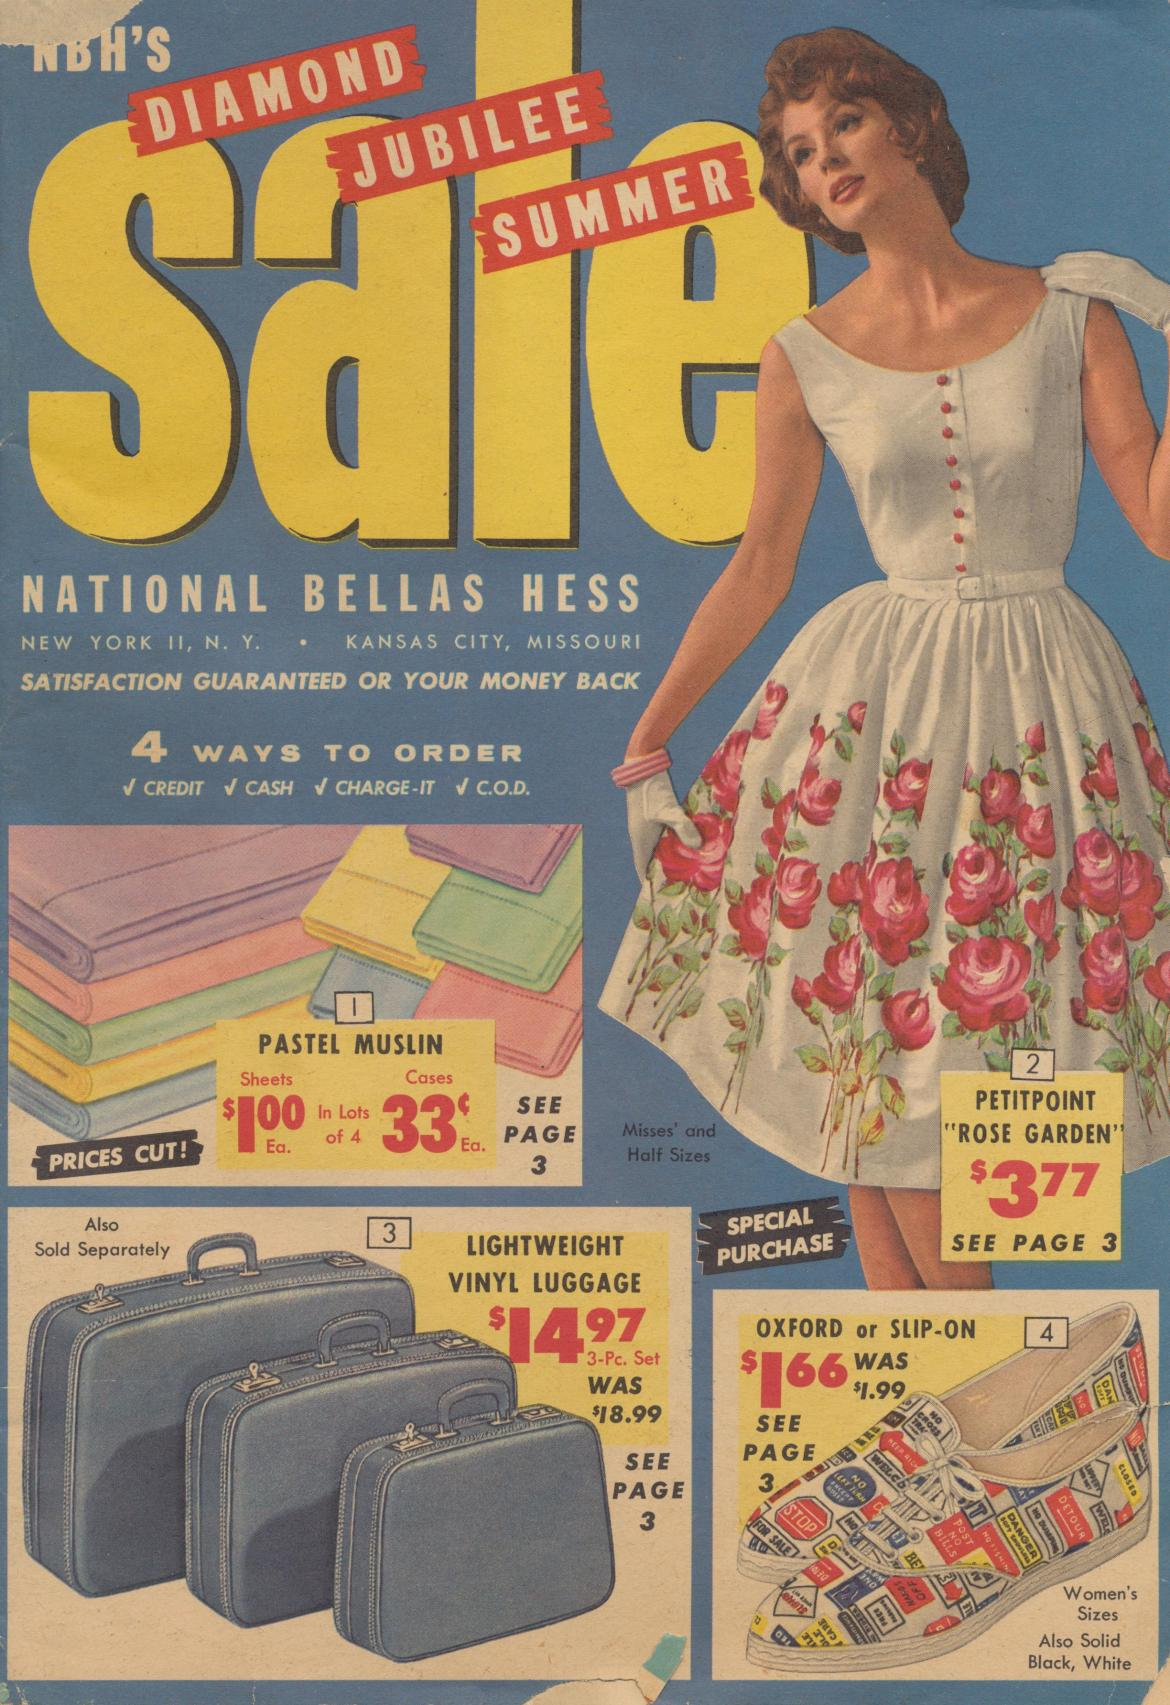 1963 National Bellas Hess Catalog